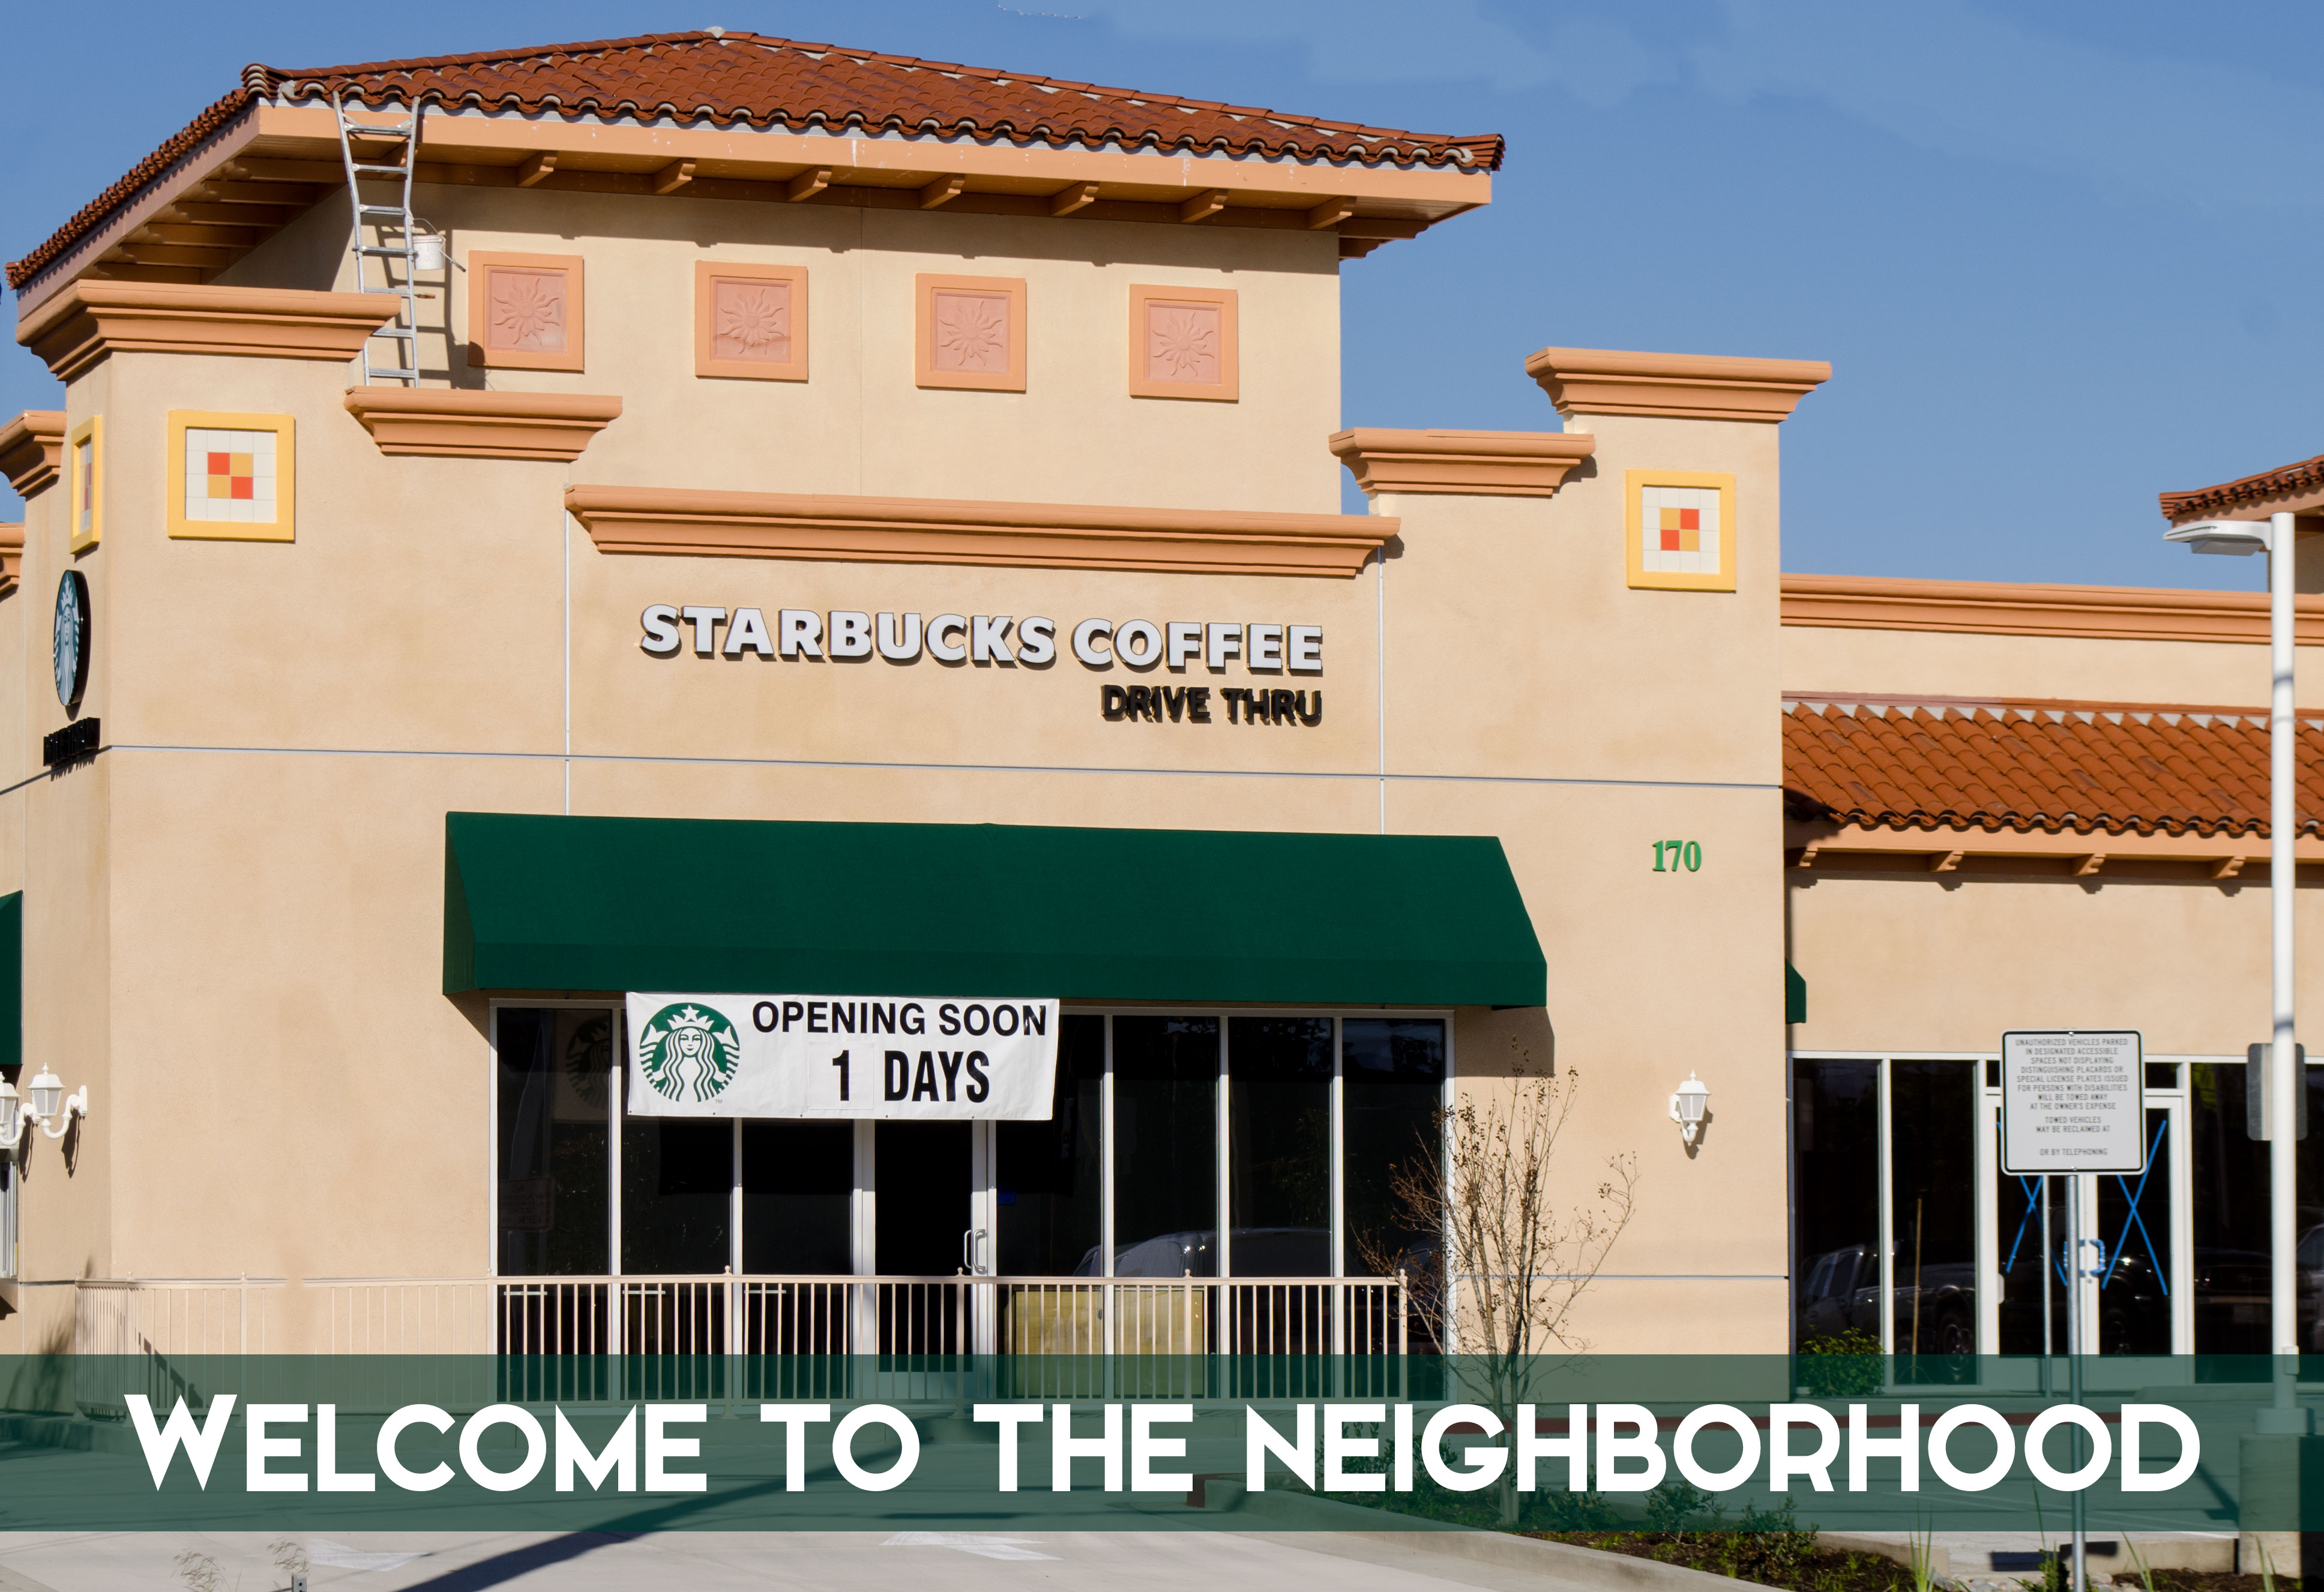 Welcome to Emerald Drive, Starbucks